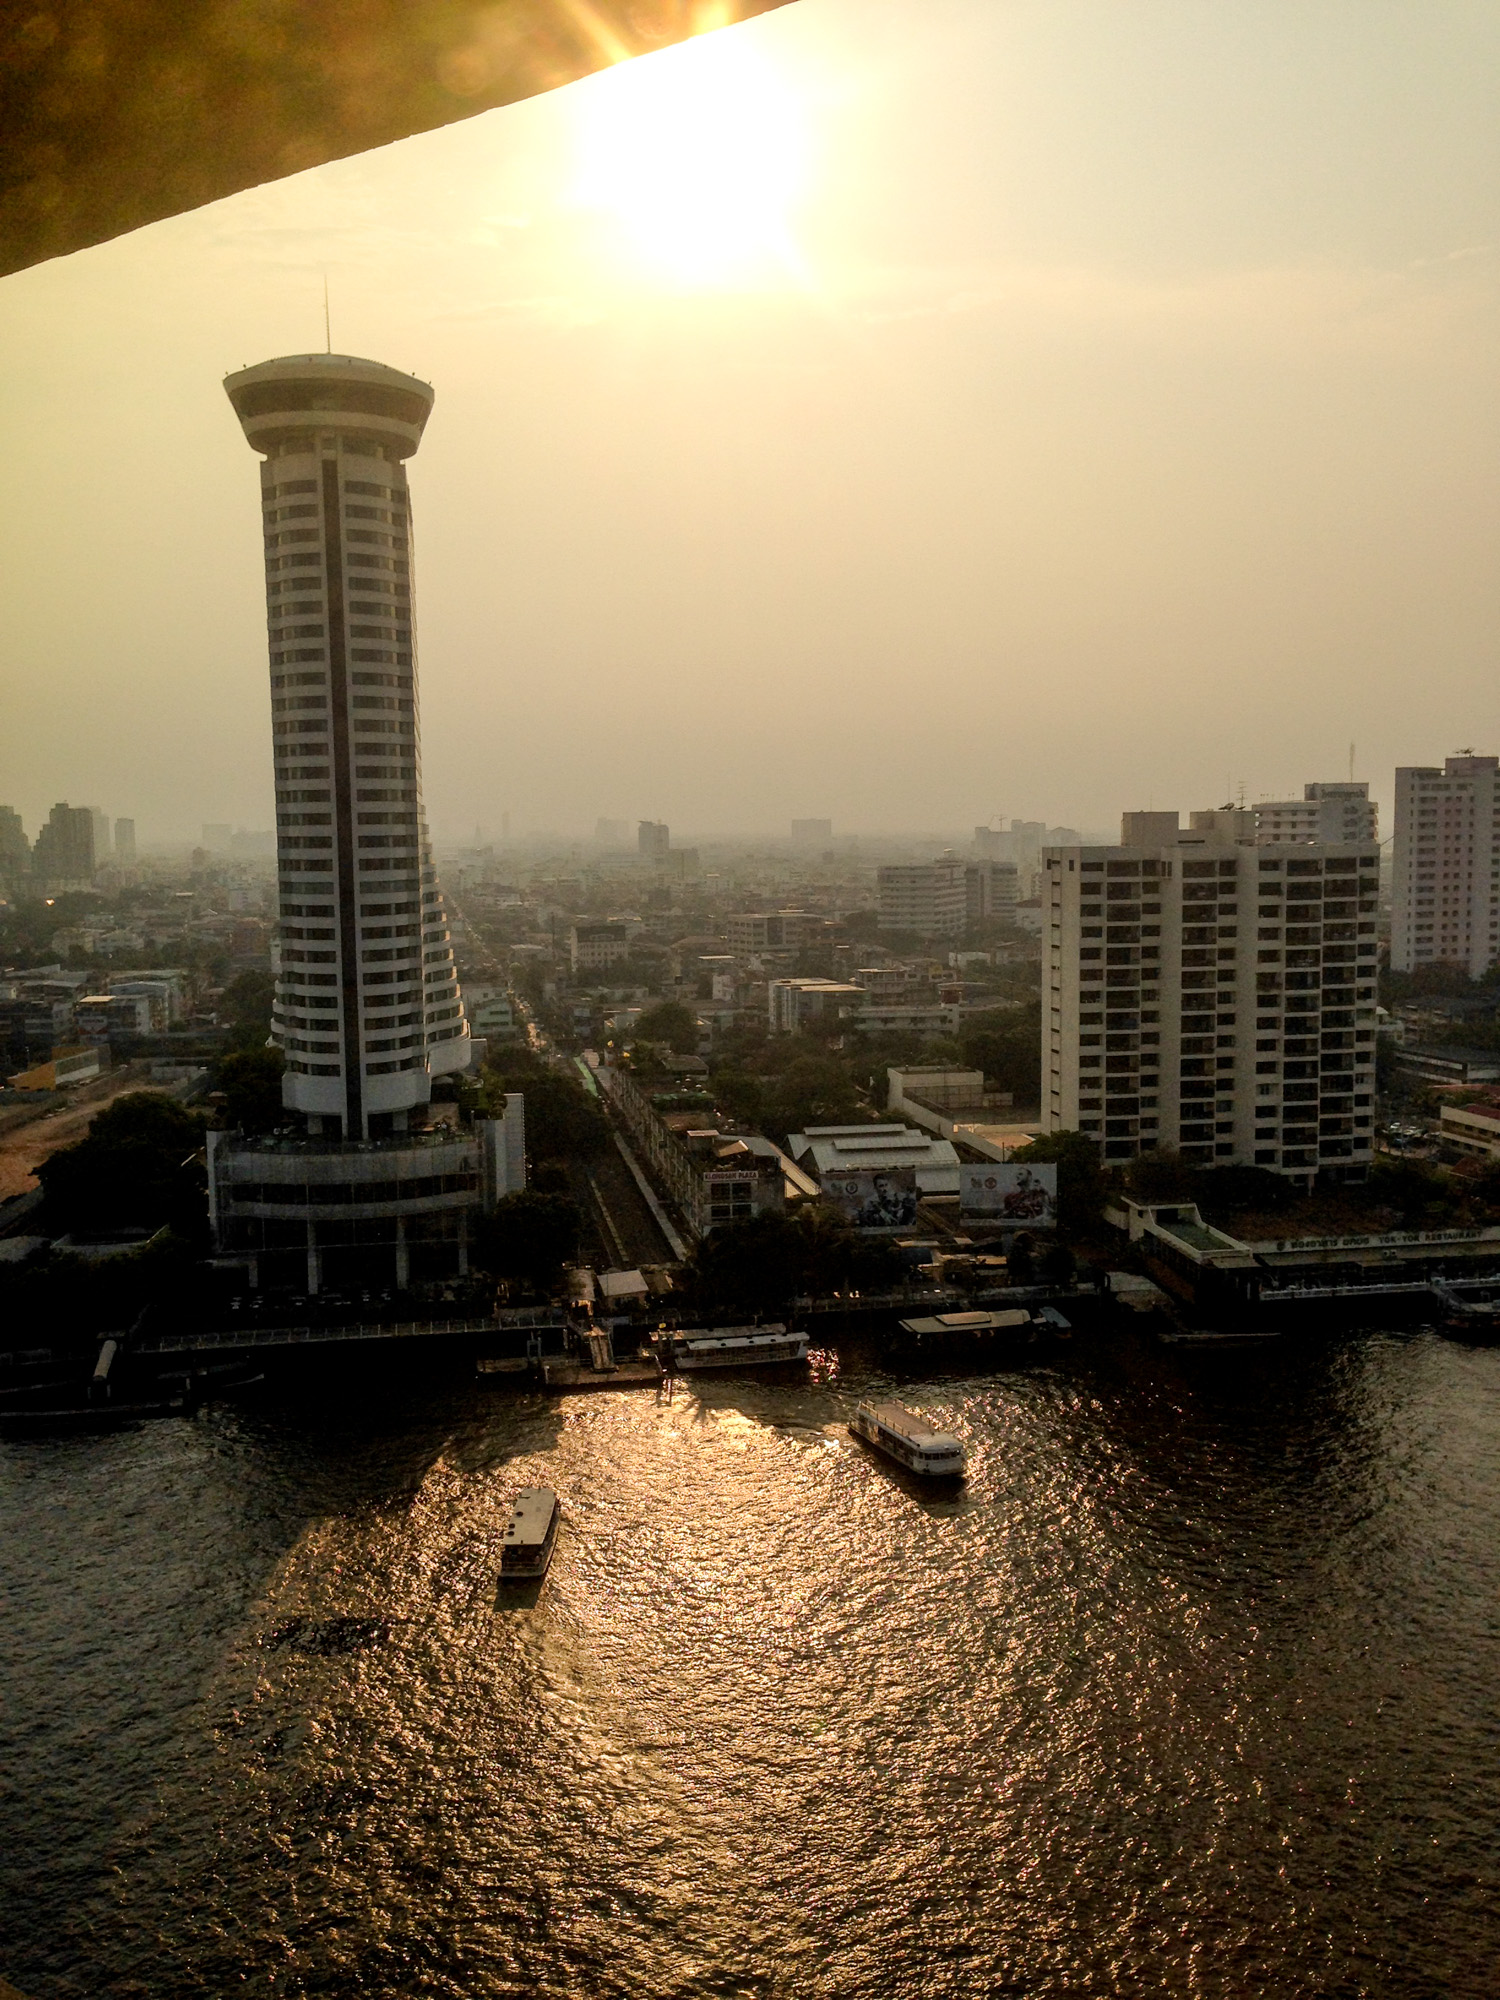 Sunset over theChao Phraya river with the  Hilton Millennium  tower in the background.